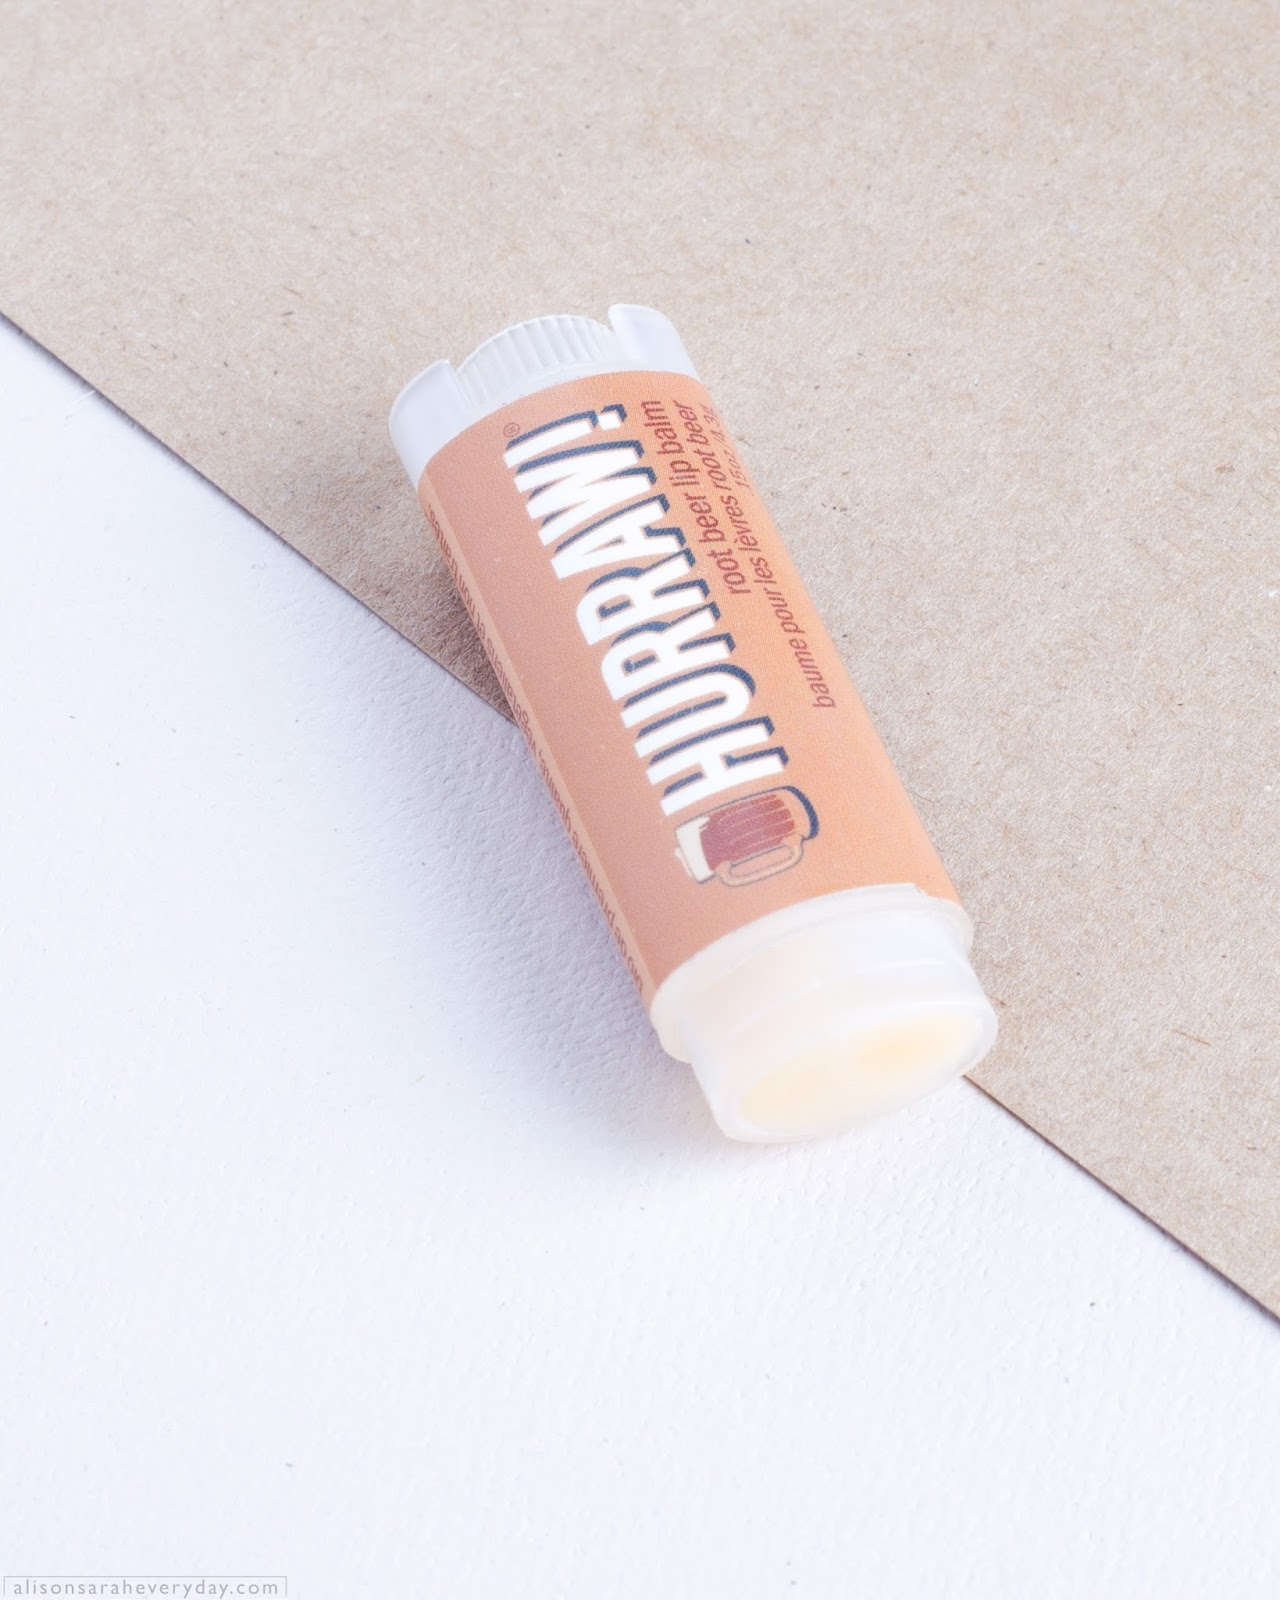 Hurraw! an all-natural, vegan, Lip Balm in the flavour Root Beer